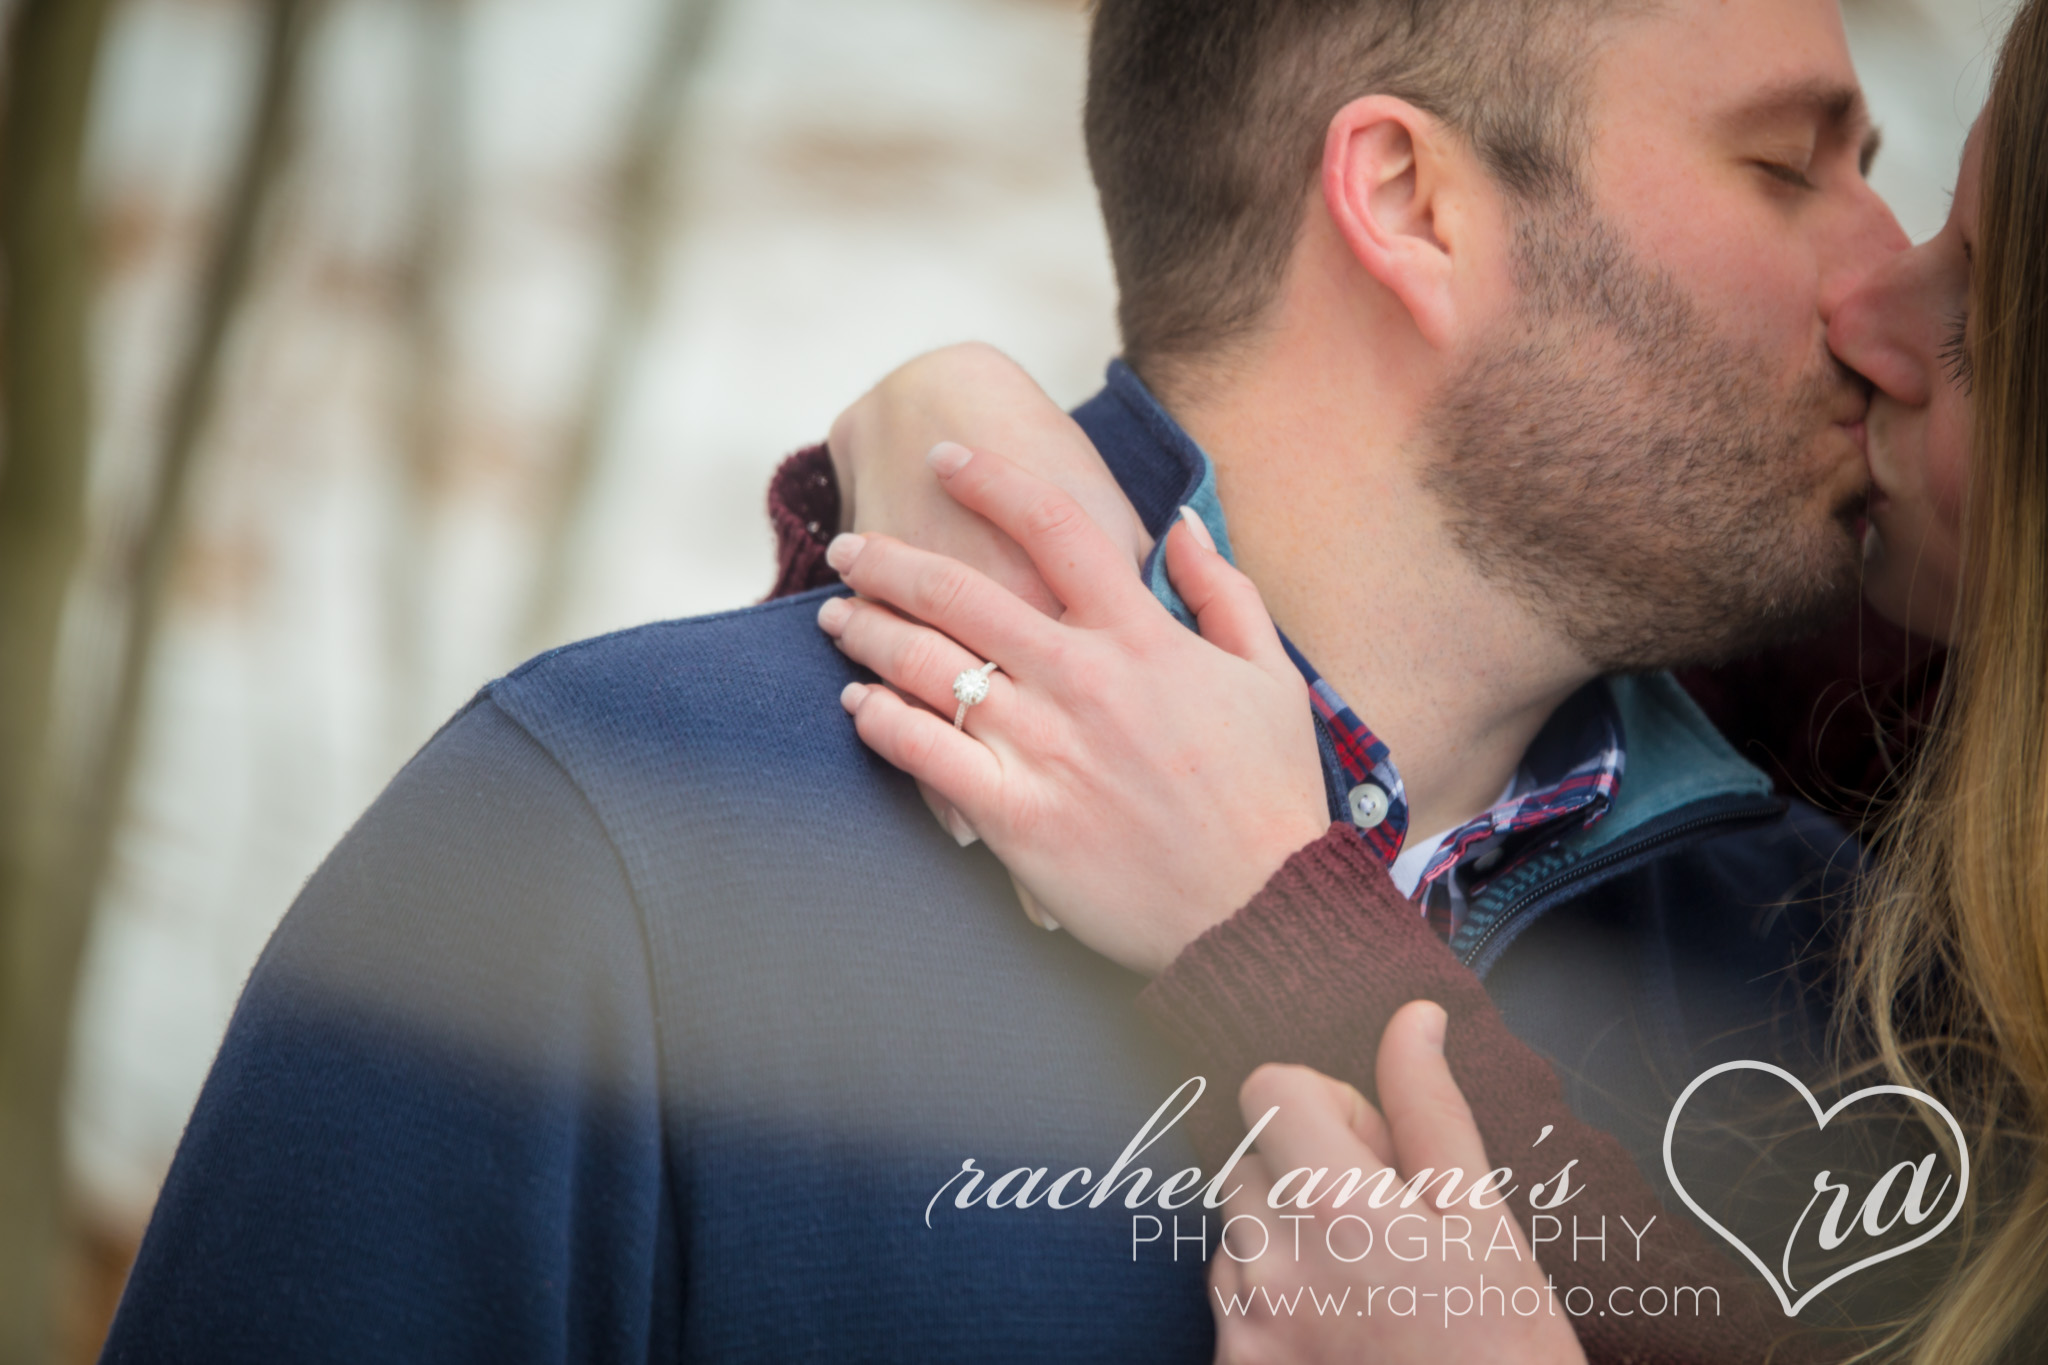 035-JKM-DUBOIS-PA-ENGAGEMENT-PHOTOGRAPHY.jpg